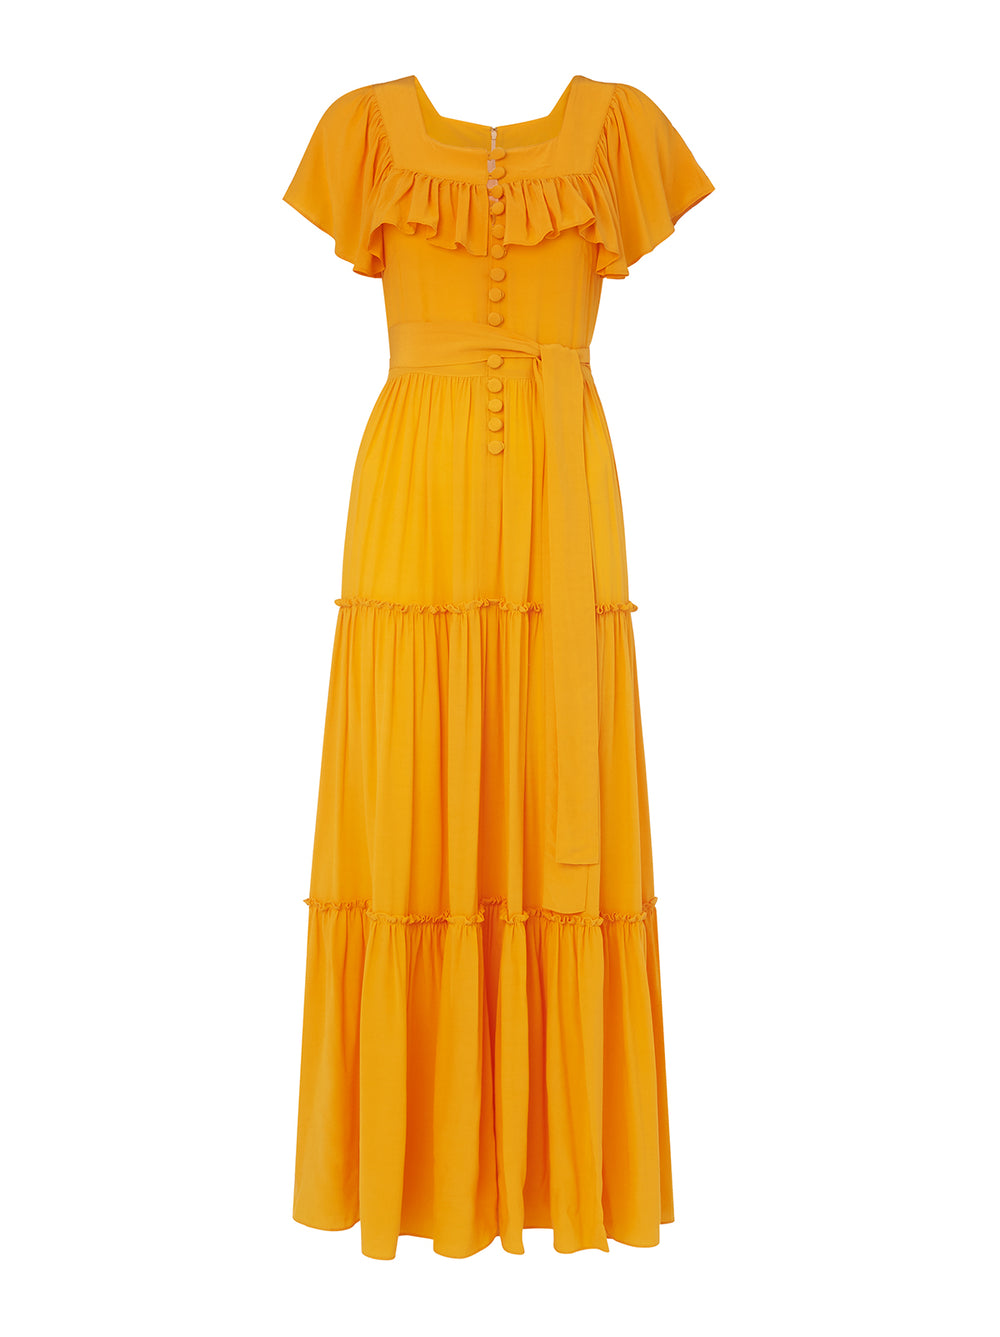 Carida Yellow Frill Sleeve Maxi Dress by KITRI Studio